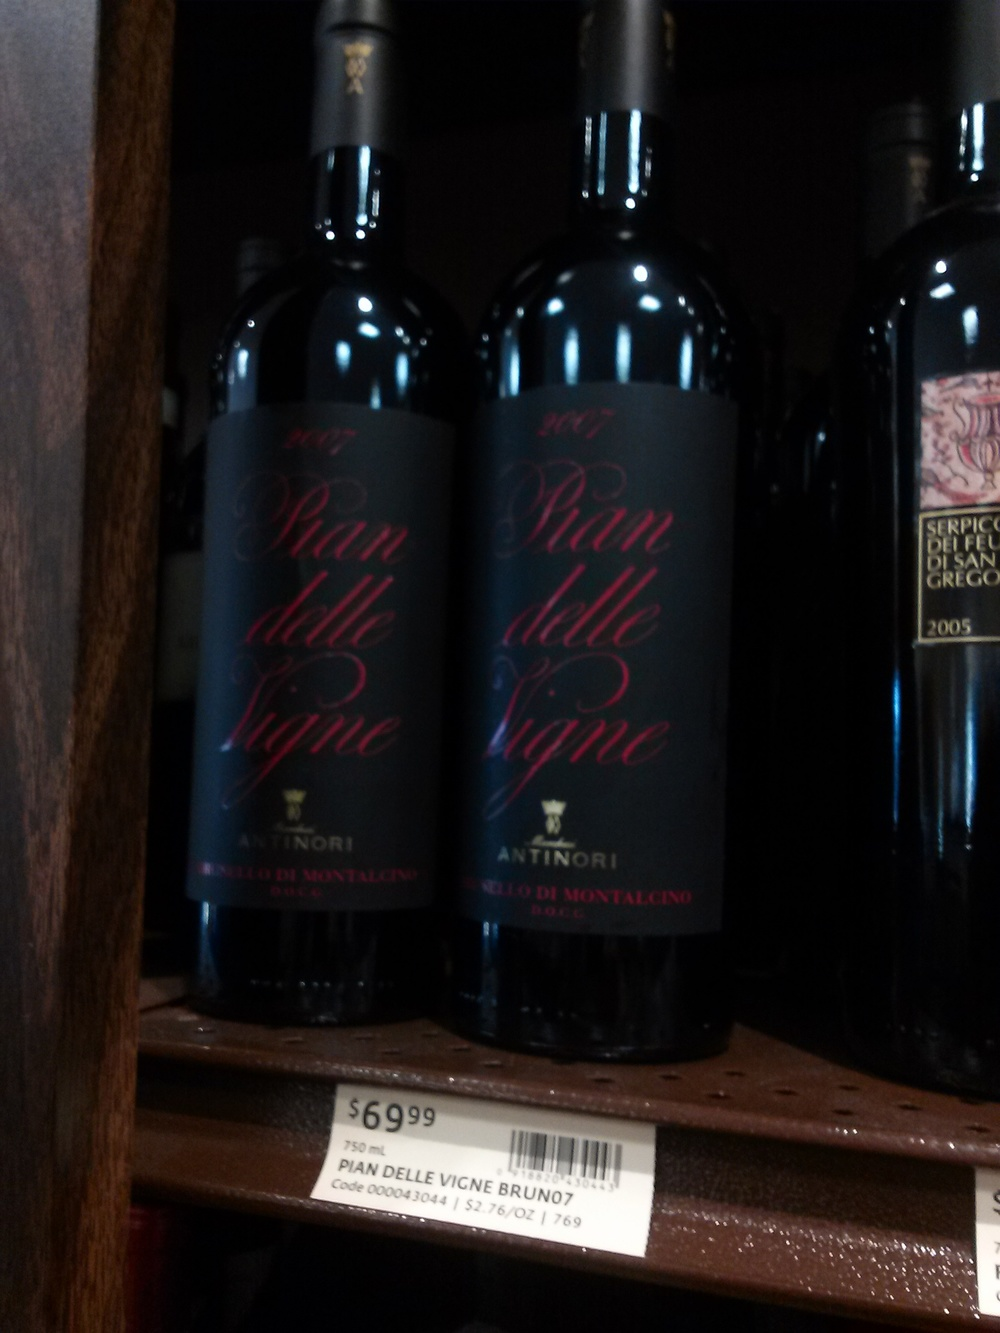 $70 for a wine that has been standing up on a shelf for who knows how long? No thanks.